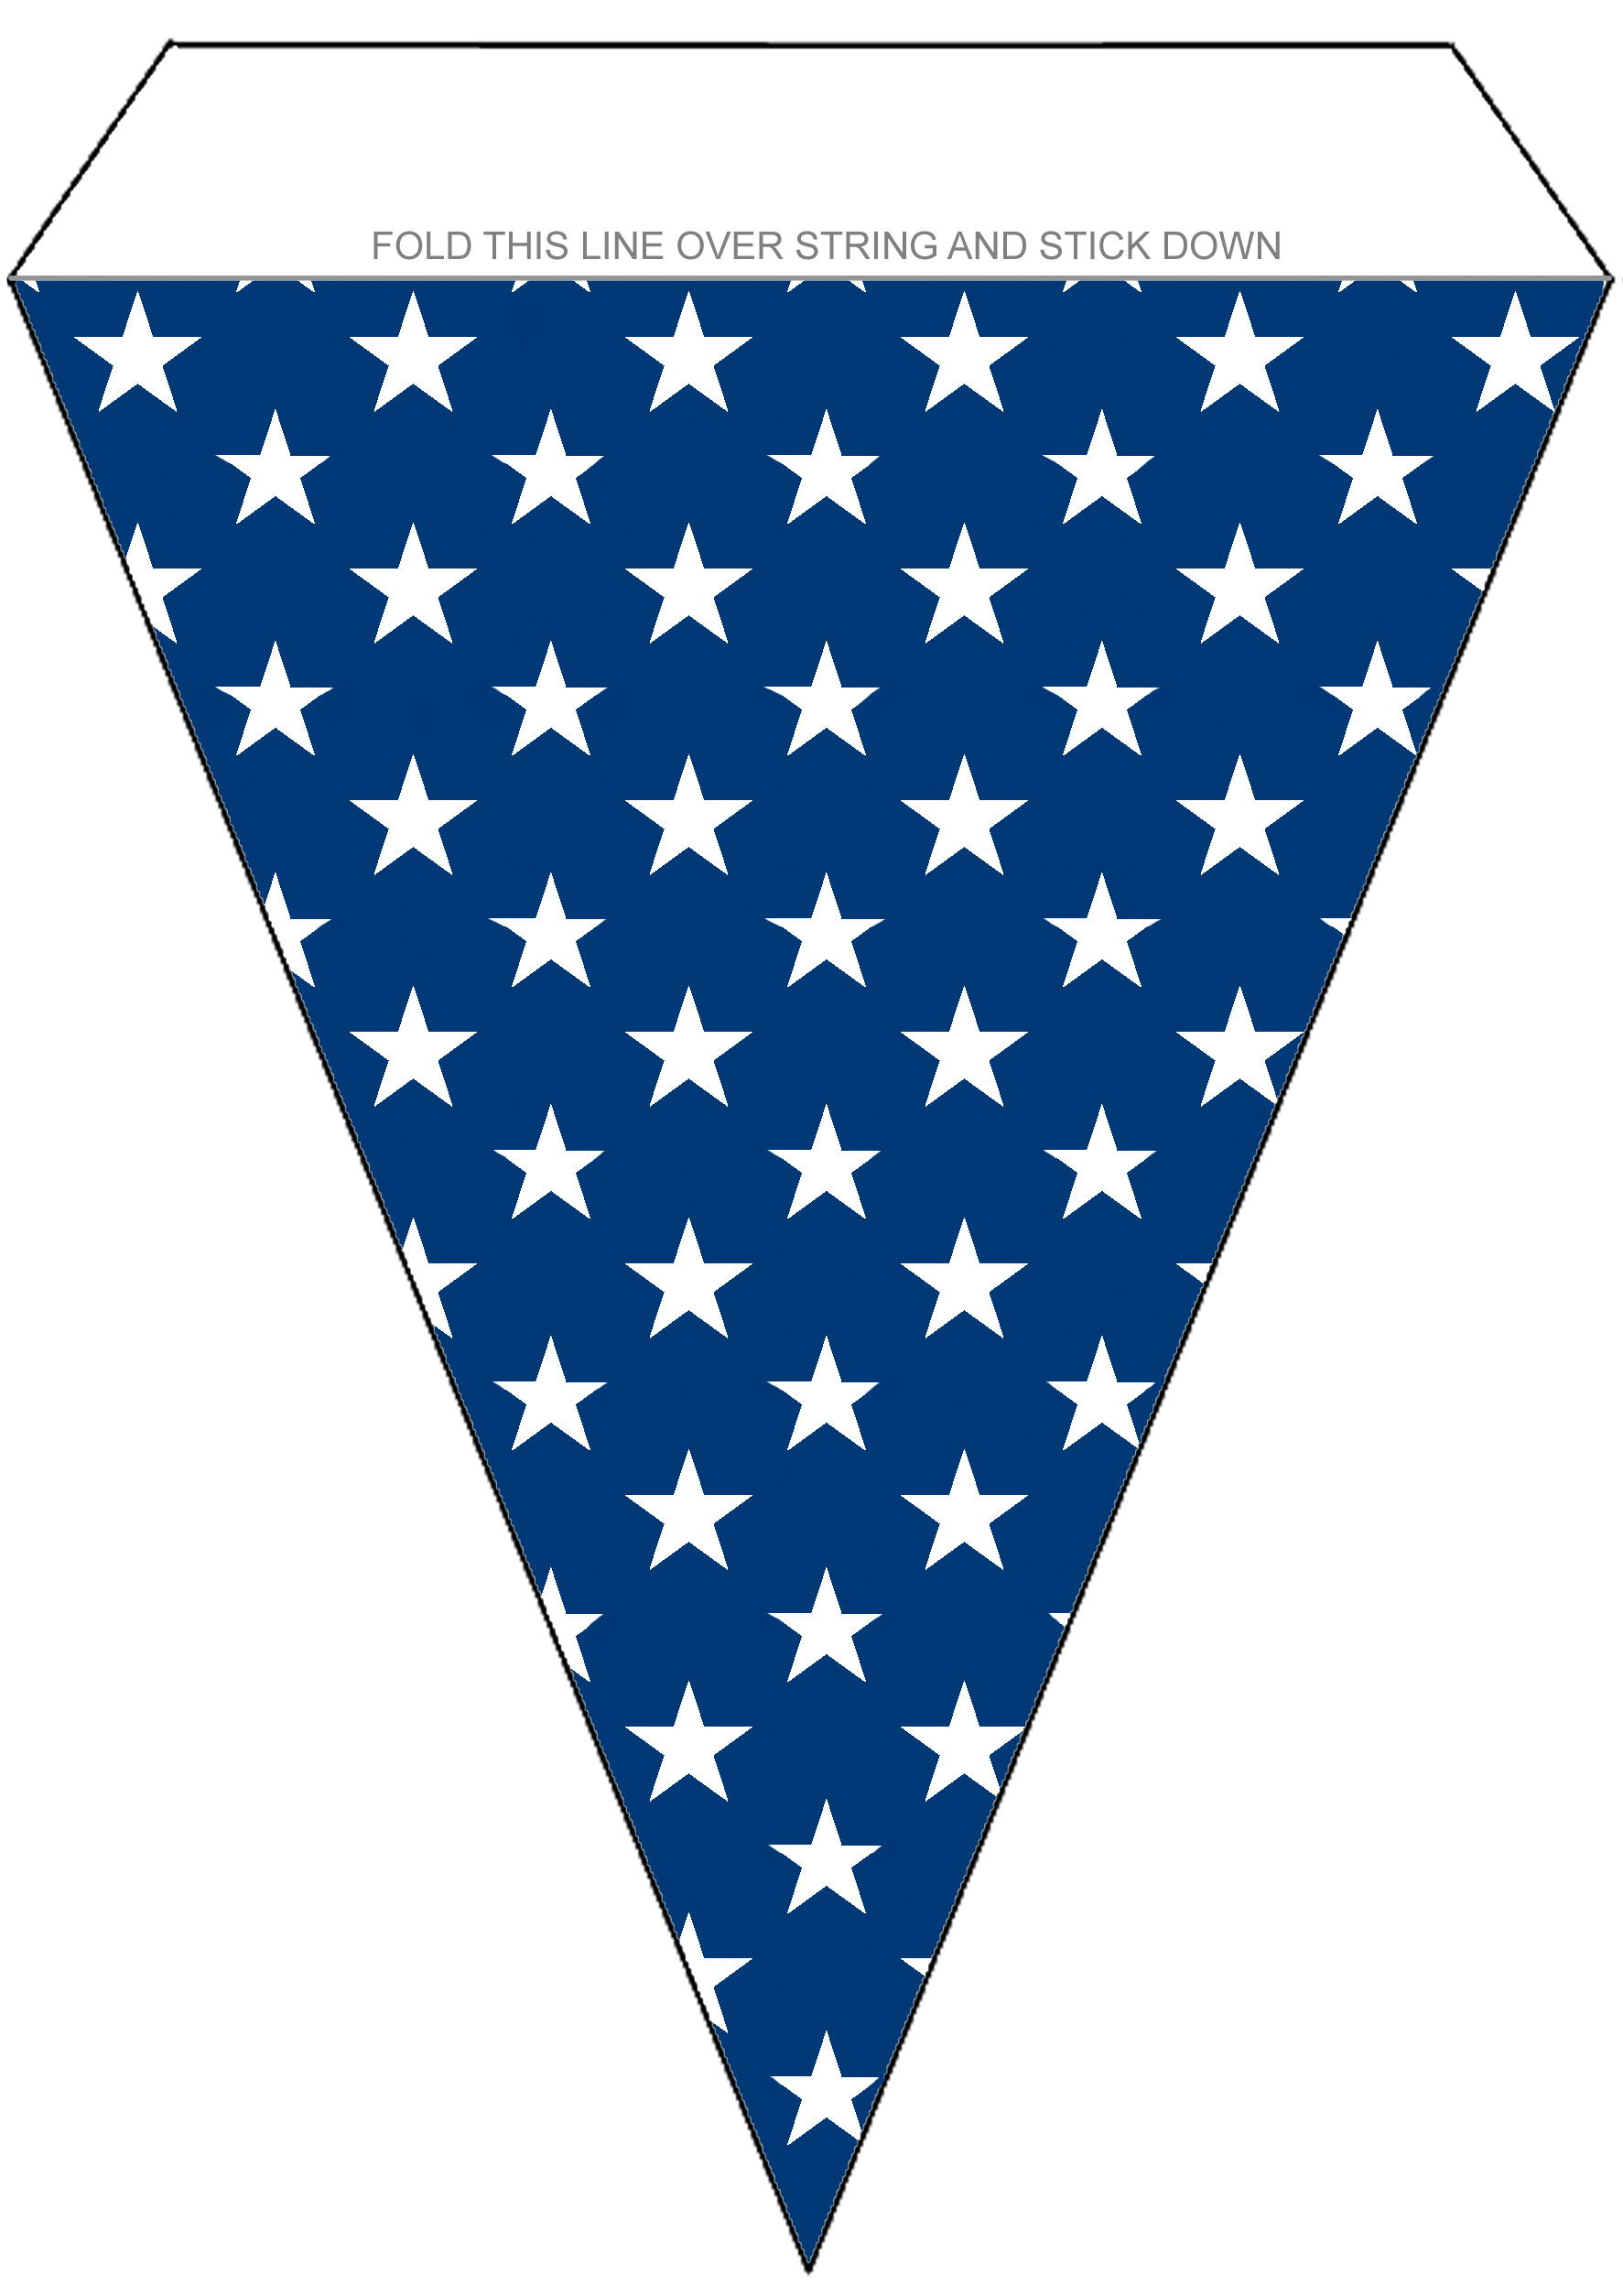 Bunting depicting stars of the USA flag